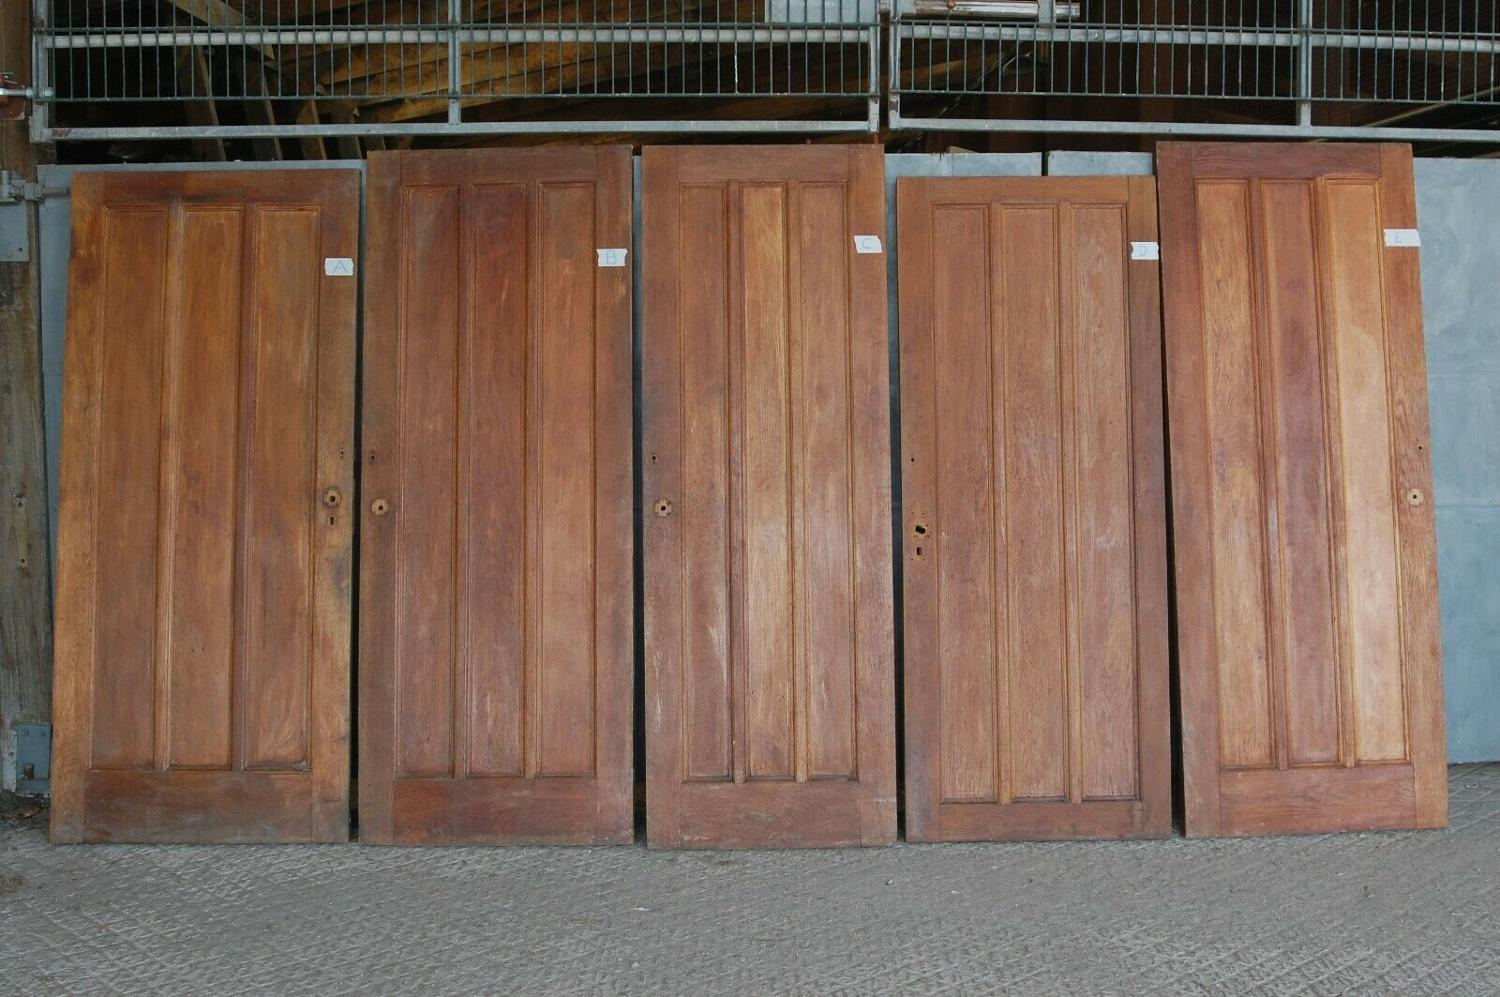 DI0685 EDWARDIAN INTERNAL OAK PANELLED DOOR - 5 AVAILABLE- SOLD SEP